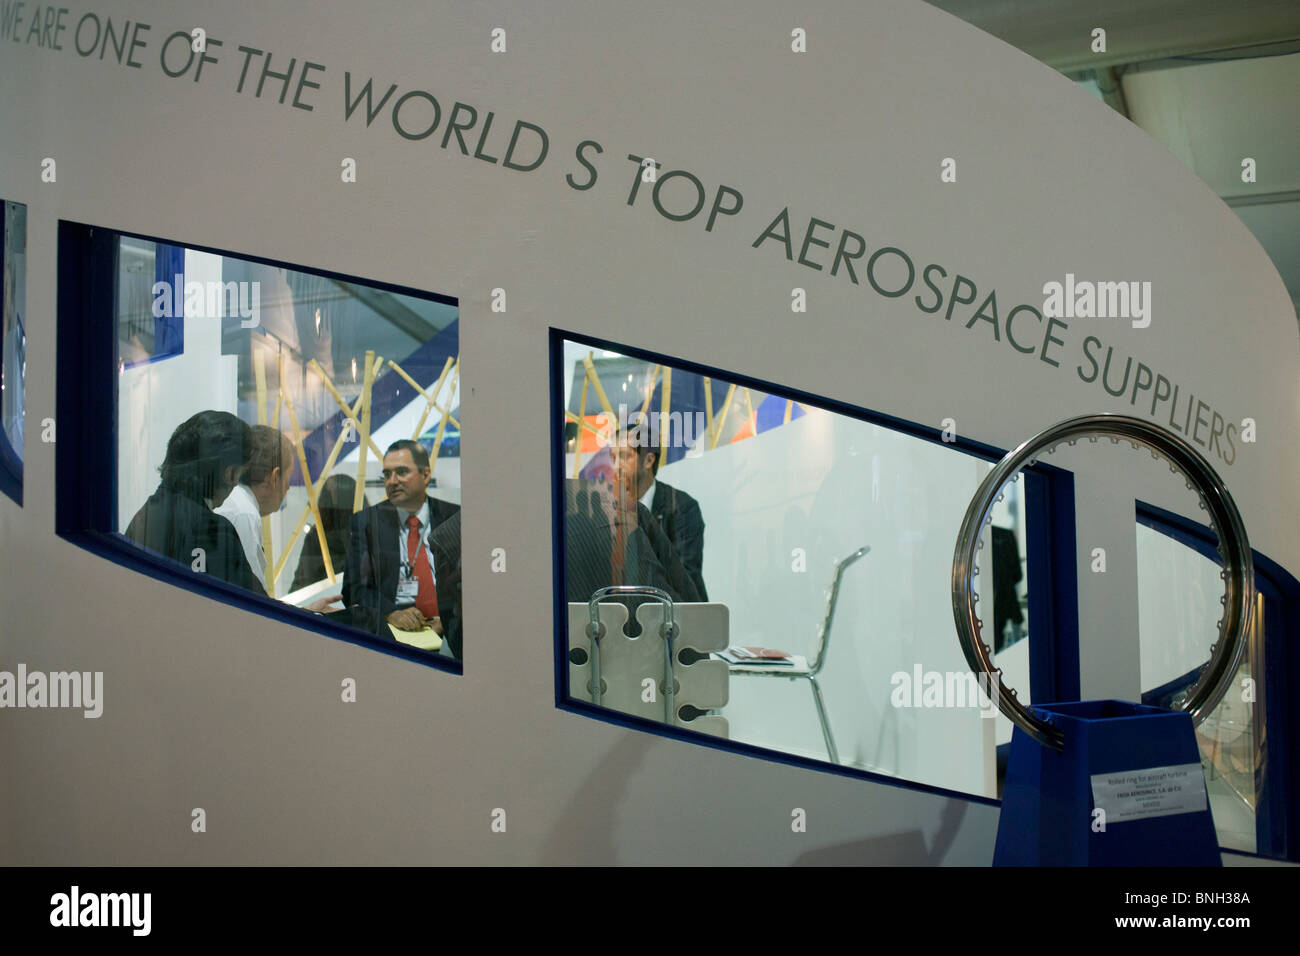 Aerospace meeting between an unknown manufacturer and potential buyers of their products at England's Farnborough - Stock Image